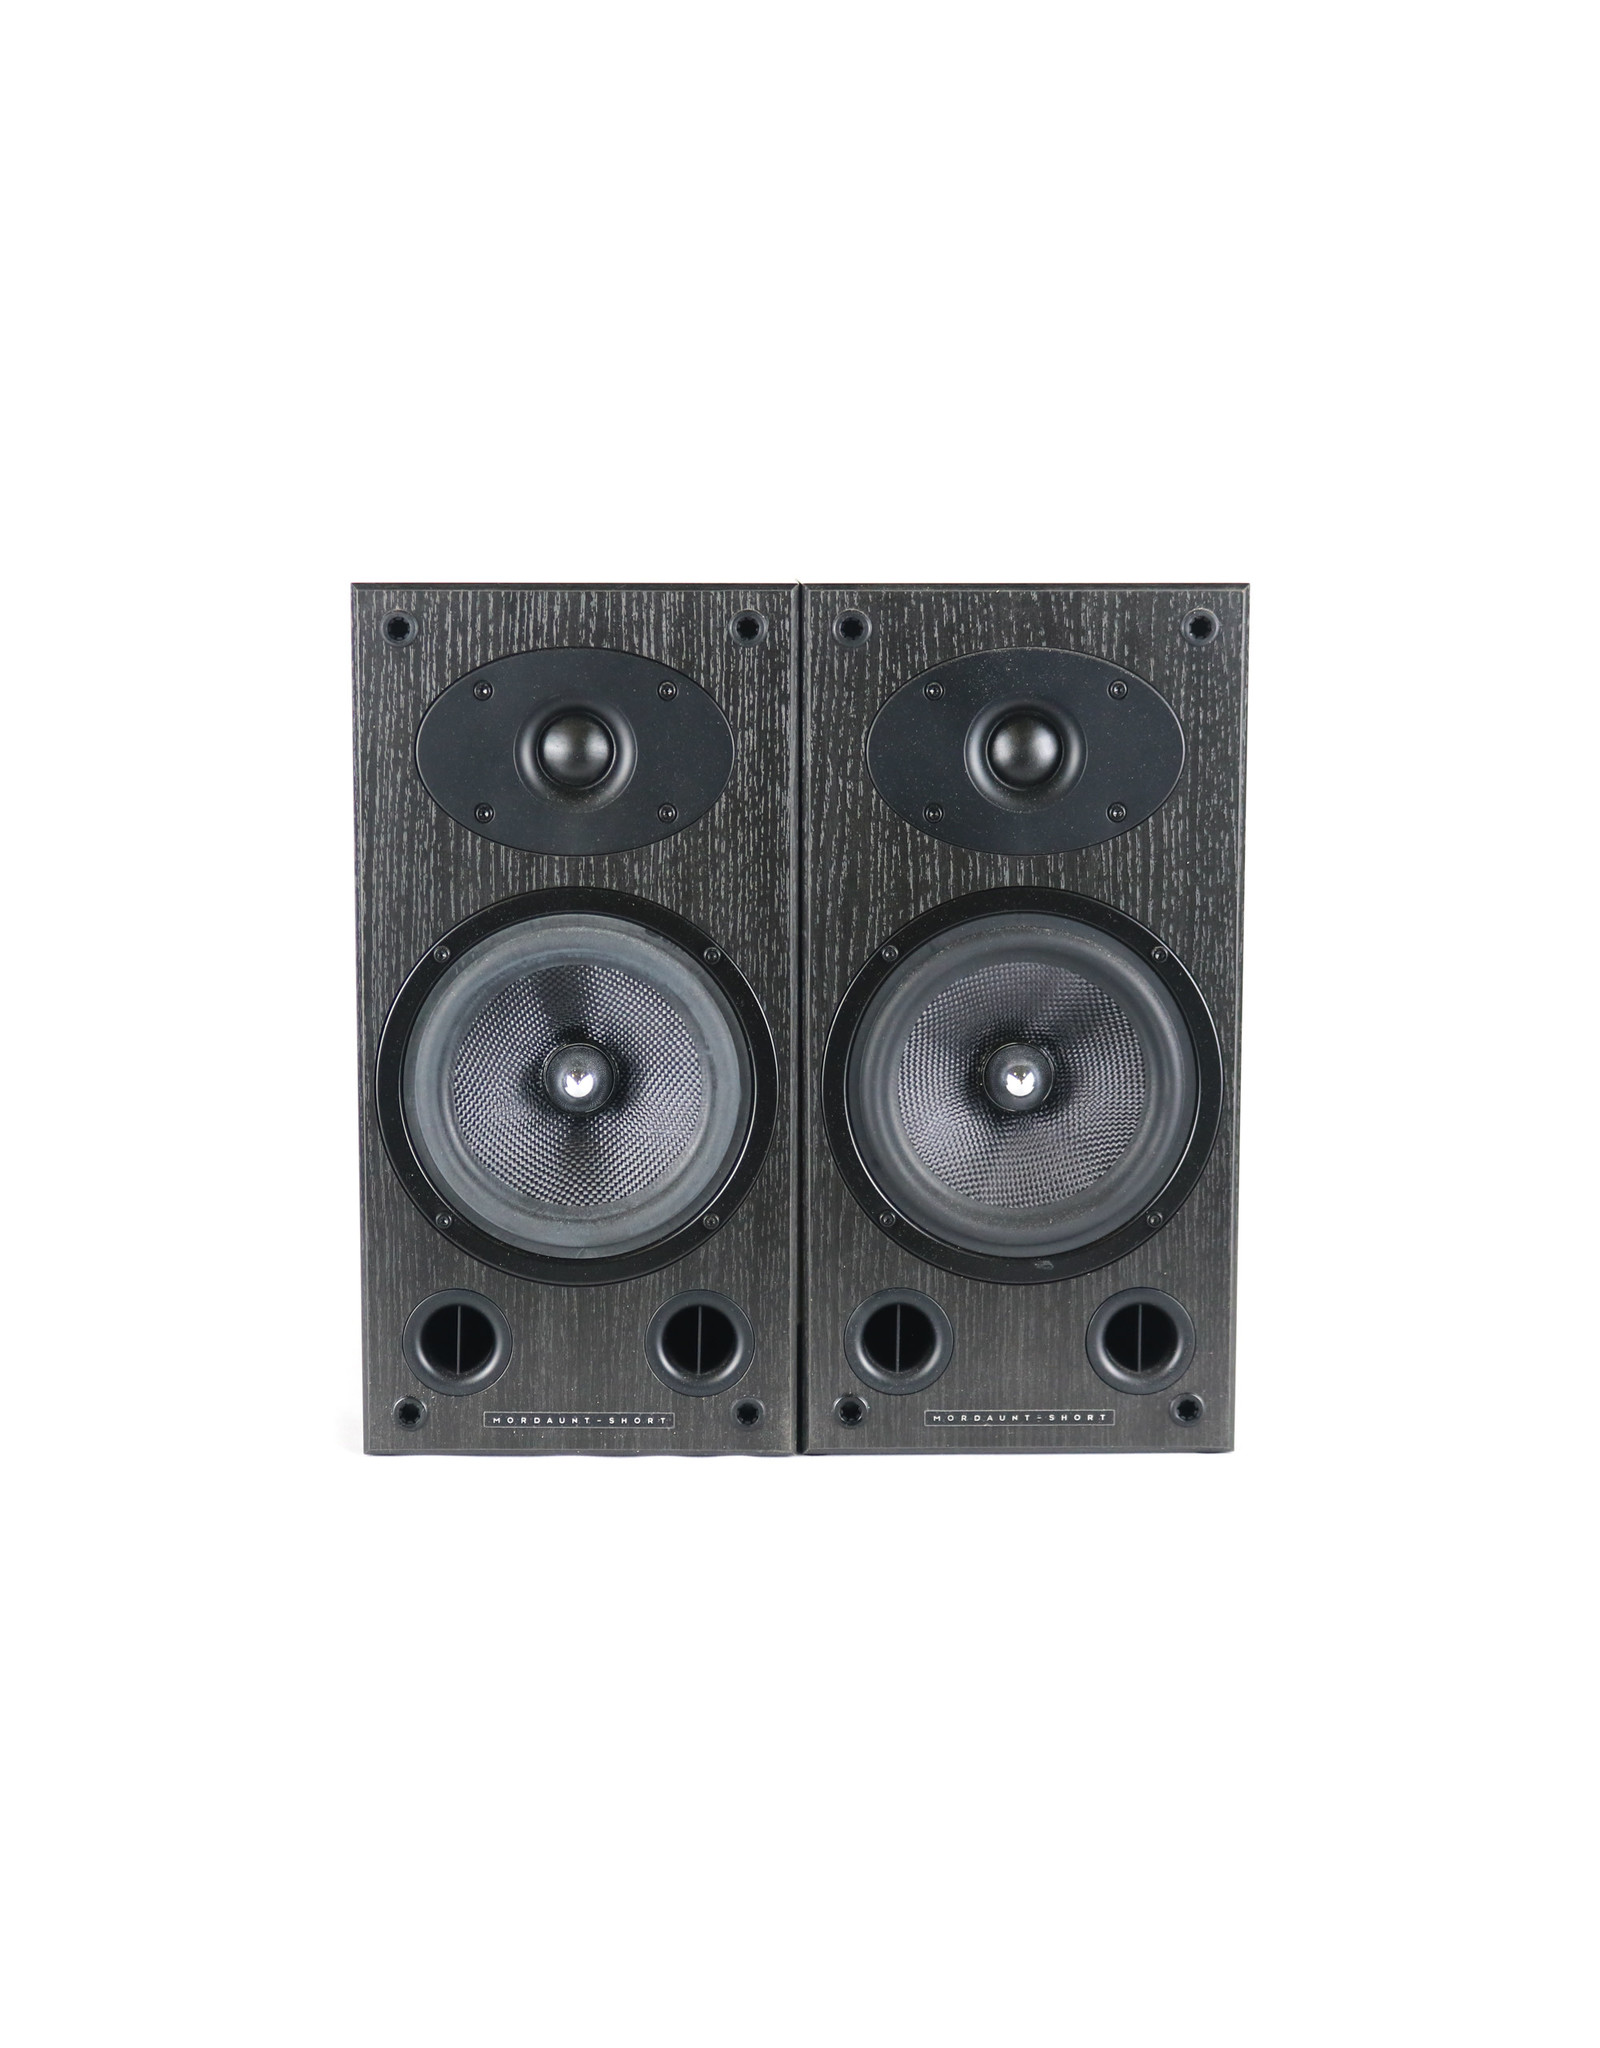 Mordaunt-Short Mordaunt-Short Carnival 2 Bookshelf Speakers Black USED